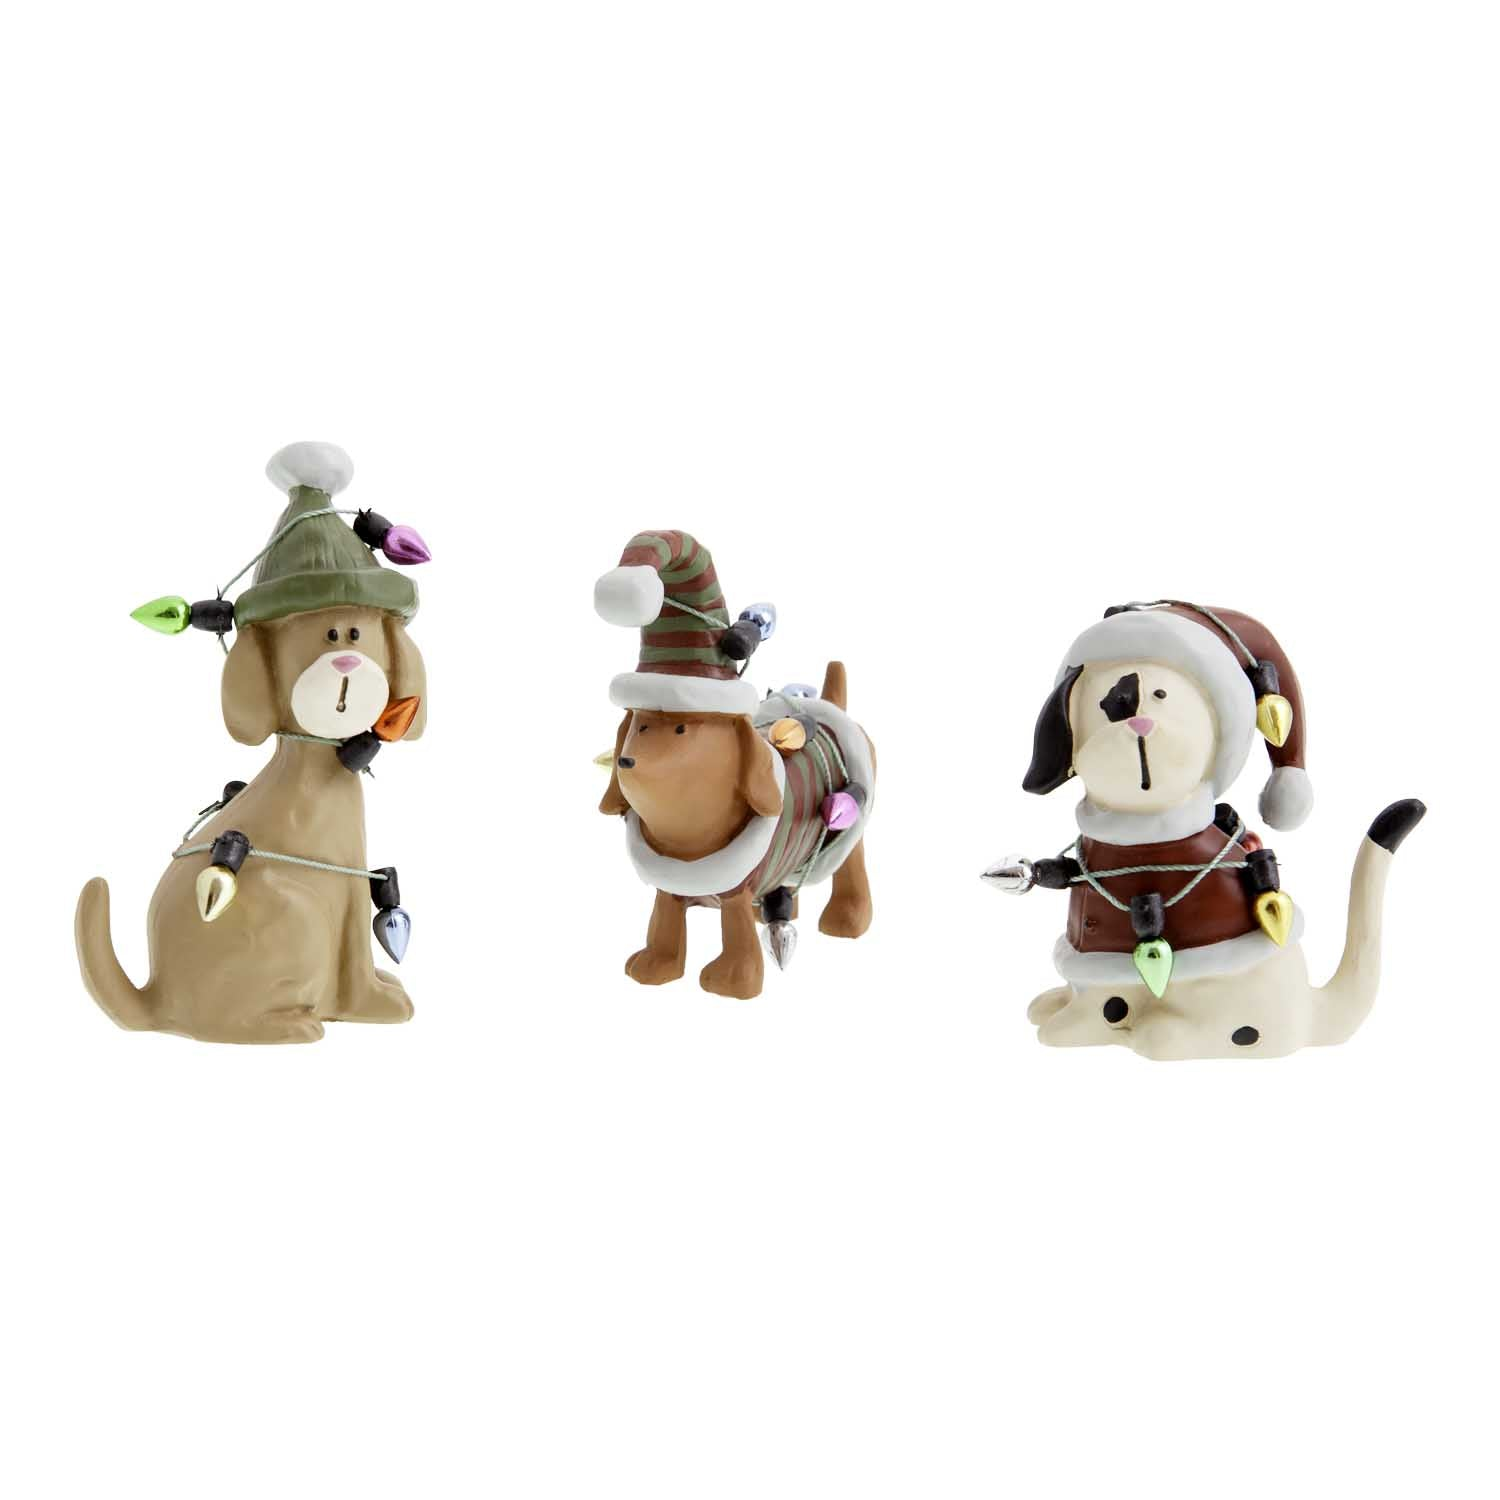 Dog Krazy Gifts - 3 dogs tangled in Xmas tree lights part of our Christmas range